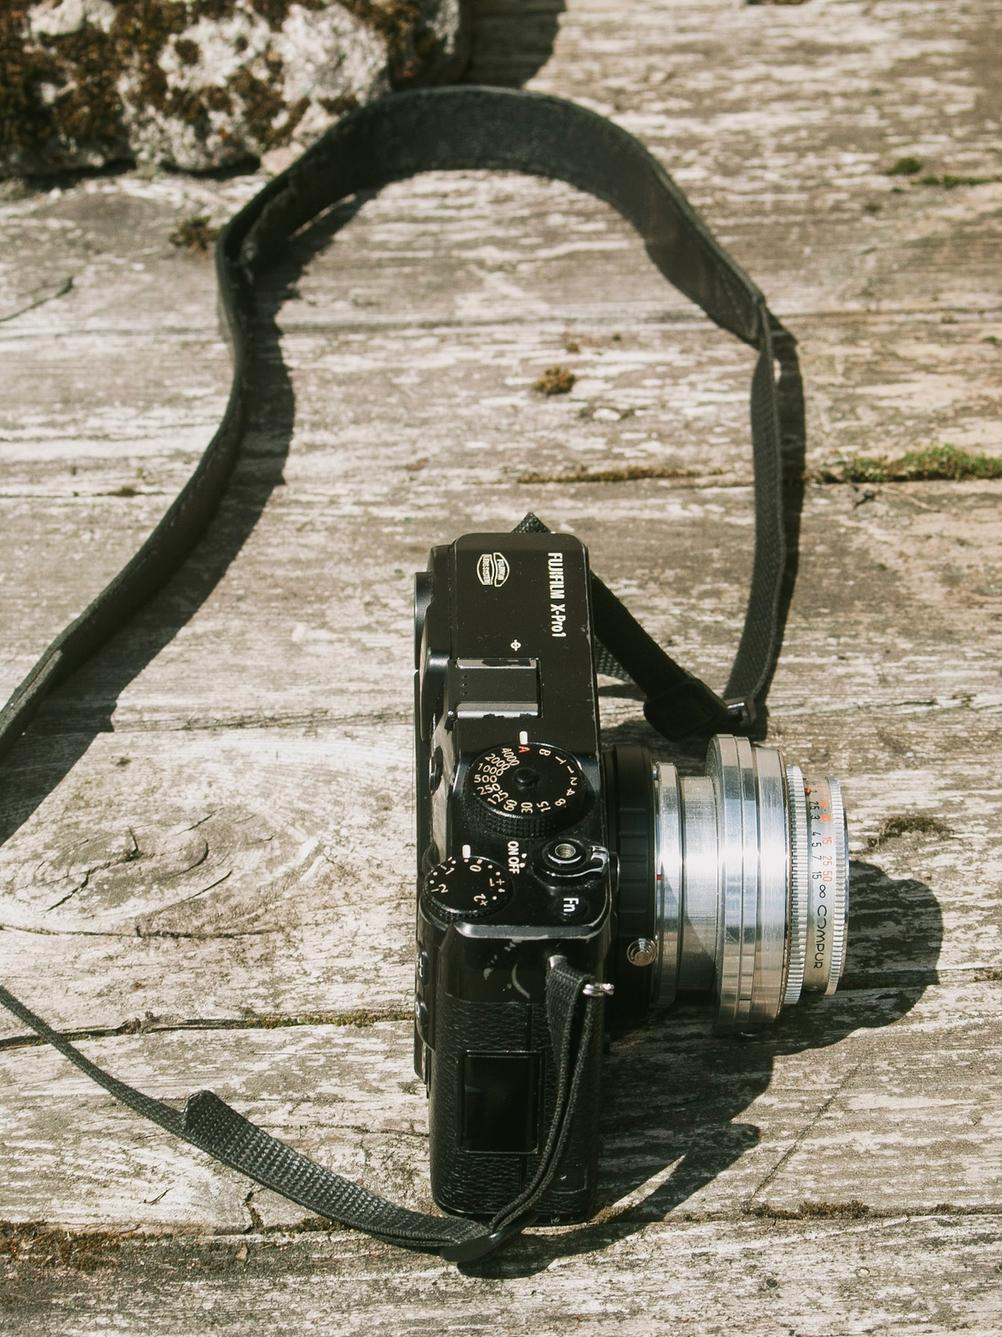 Photo of Fujifilm X-Pro1 with a weird lens on.